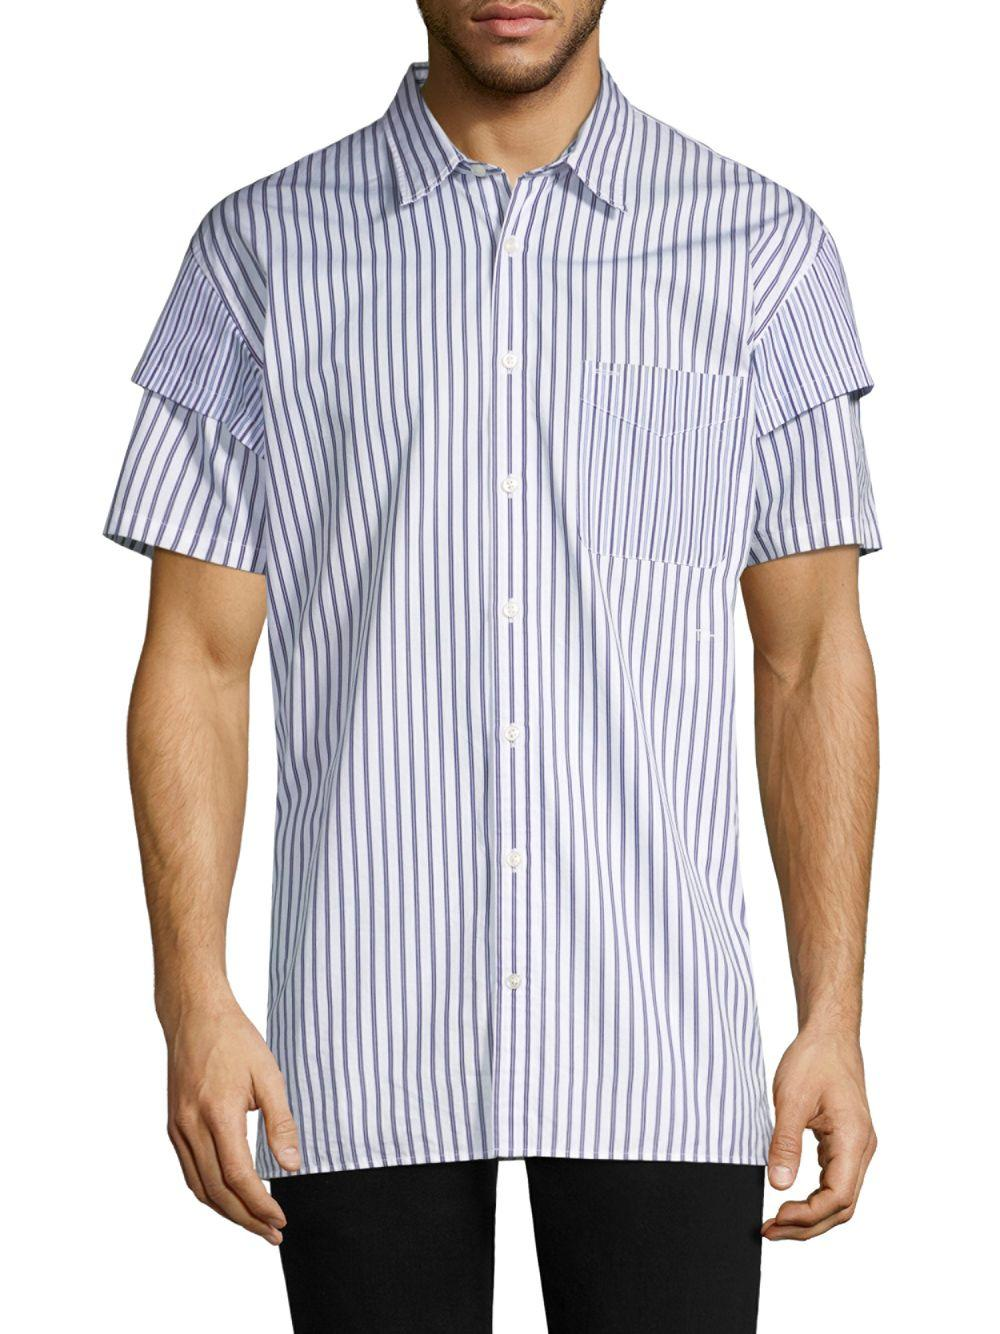 6f905e08 Lyst - Tommy Hilfiger He Two-in-one Shirt in Blue for Men